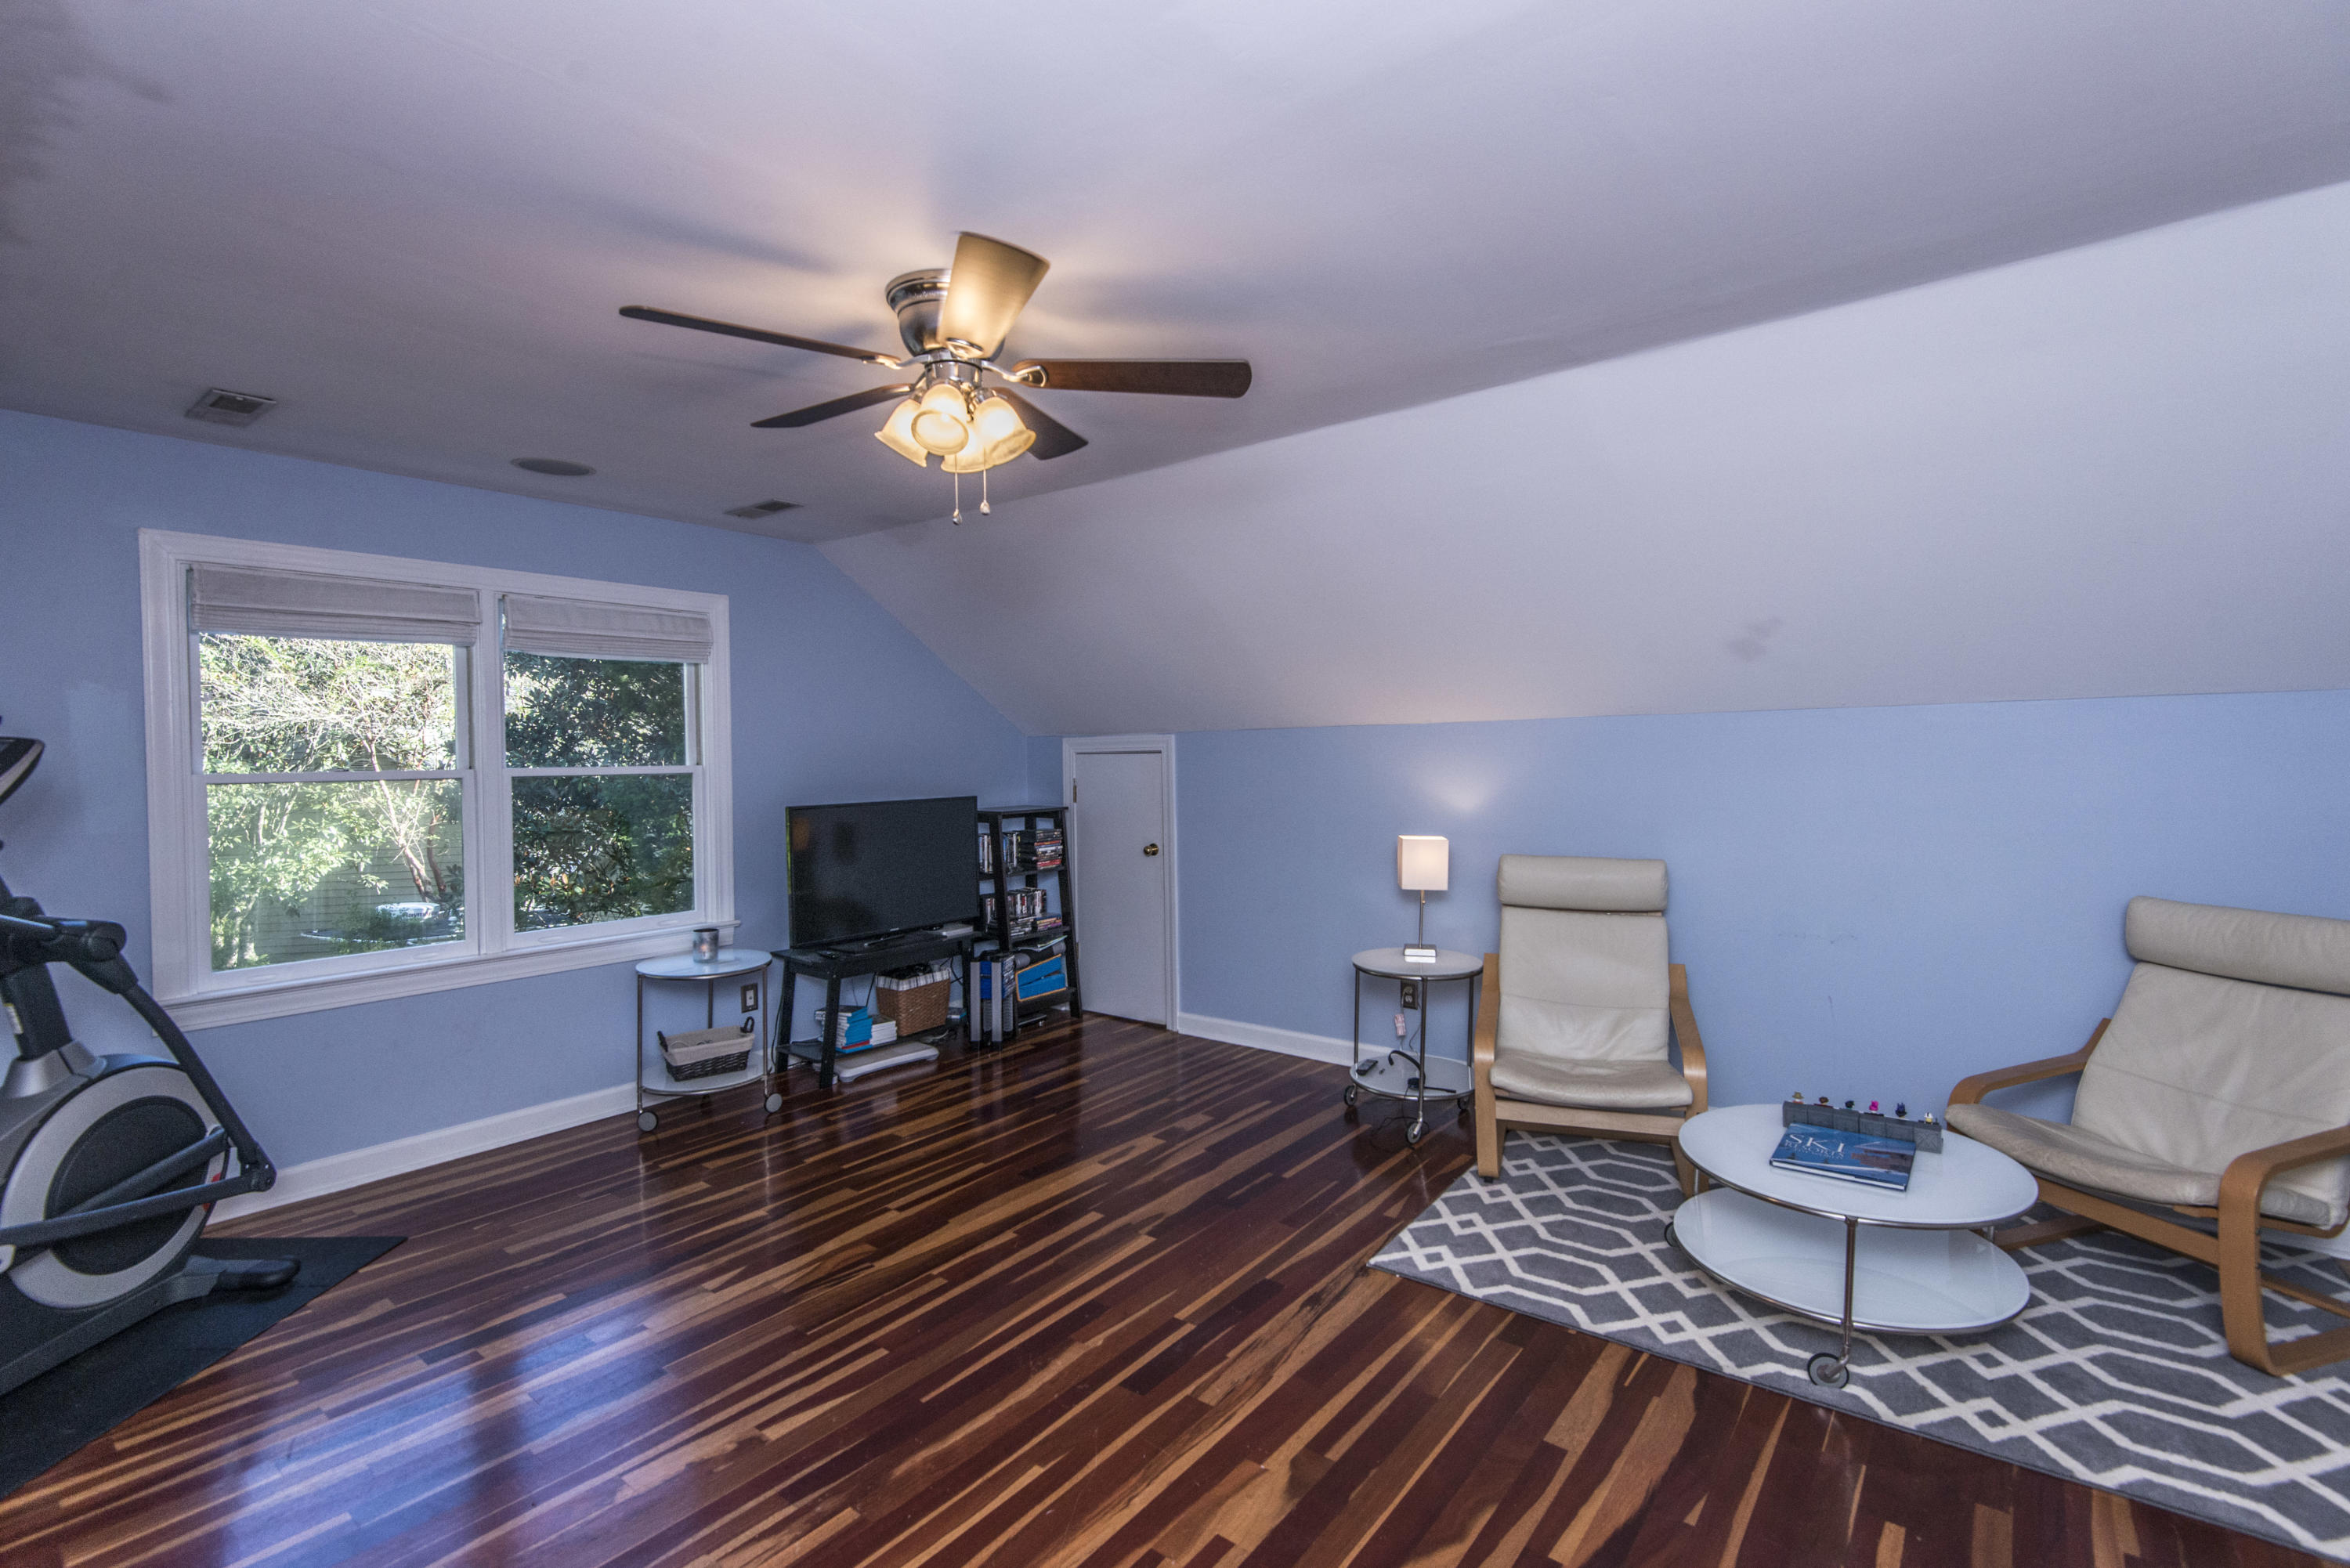 Maclaura Hall Homes For Sale - 3232 Hagerty, Charleston, SC - 3